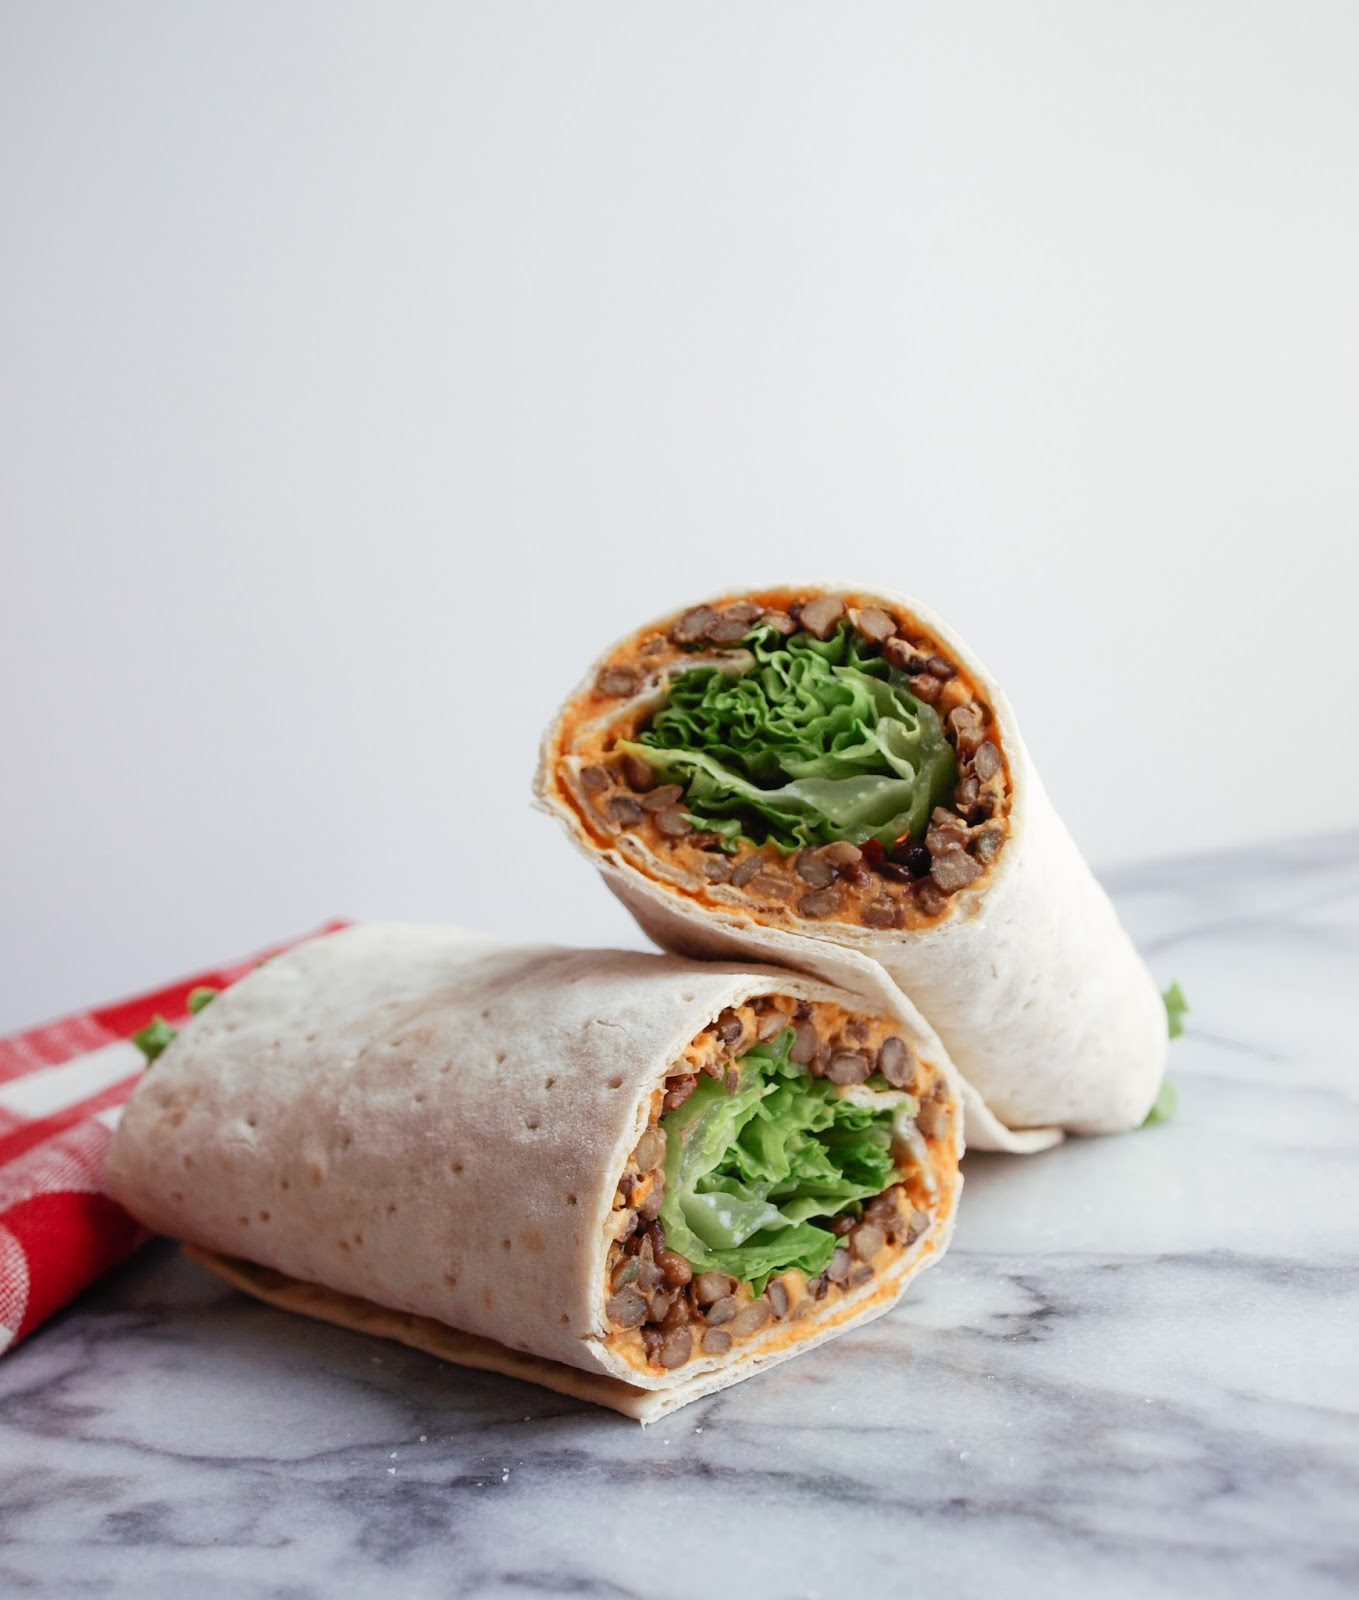 THE SIMPLE VEGANISTA: LENTIL & SUN-DRIED TOMATO HUMMUS WRAP